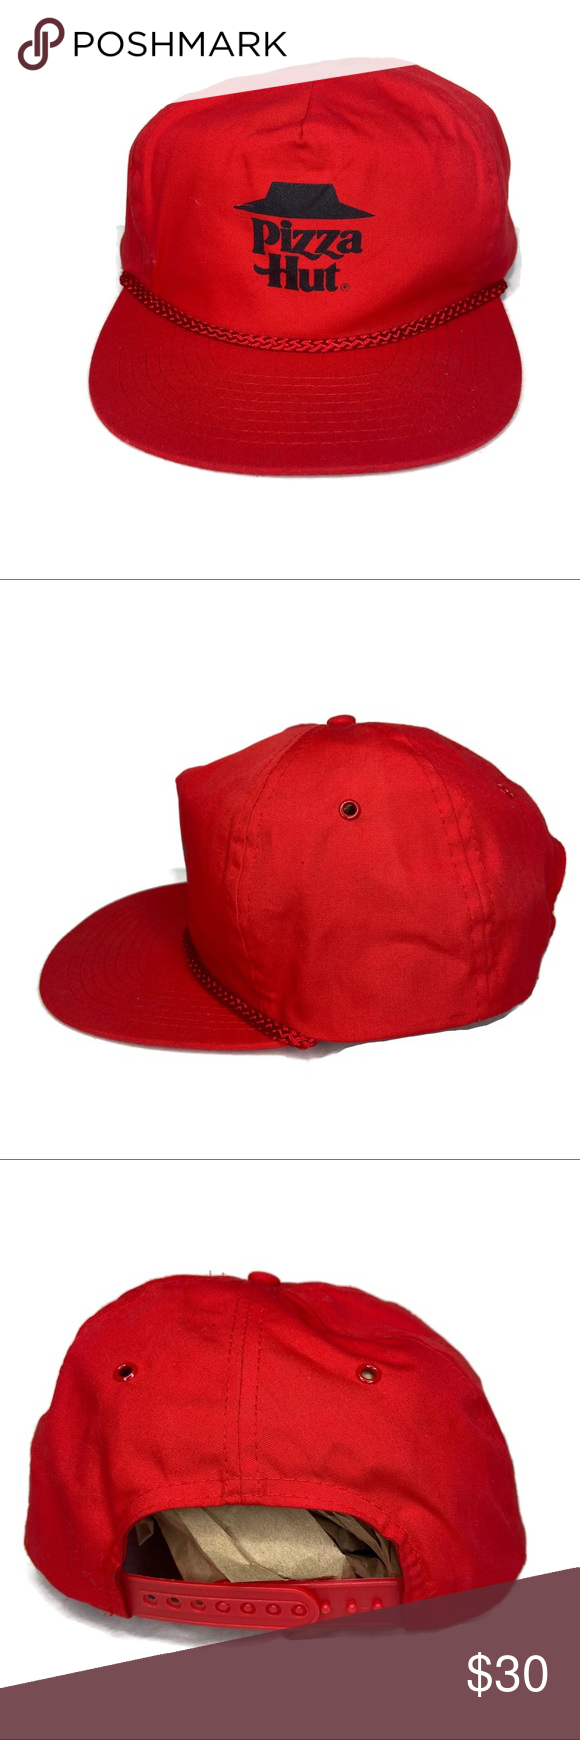 Vintage Pizza Hut Red Rope Snapback Hat Vintage Pizza Hut Red Rope Snapback Hat Hat In Very Good Shape Bill Is In Great Shape Pi Red Rope Snapback Hats Hats